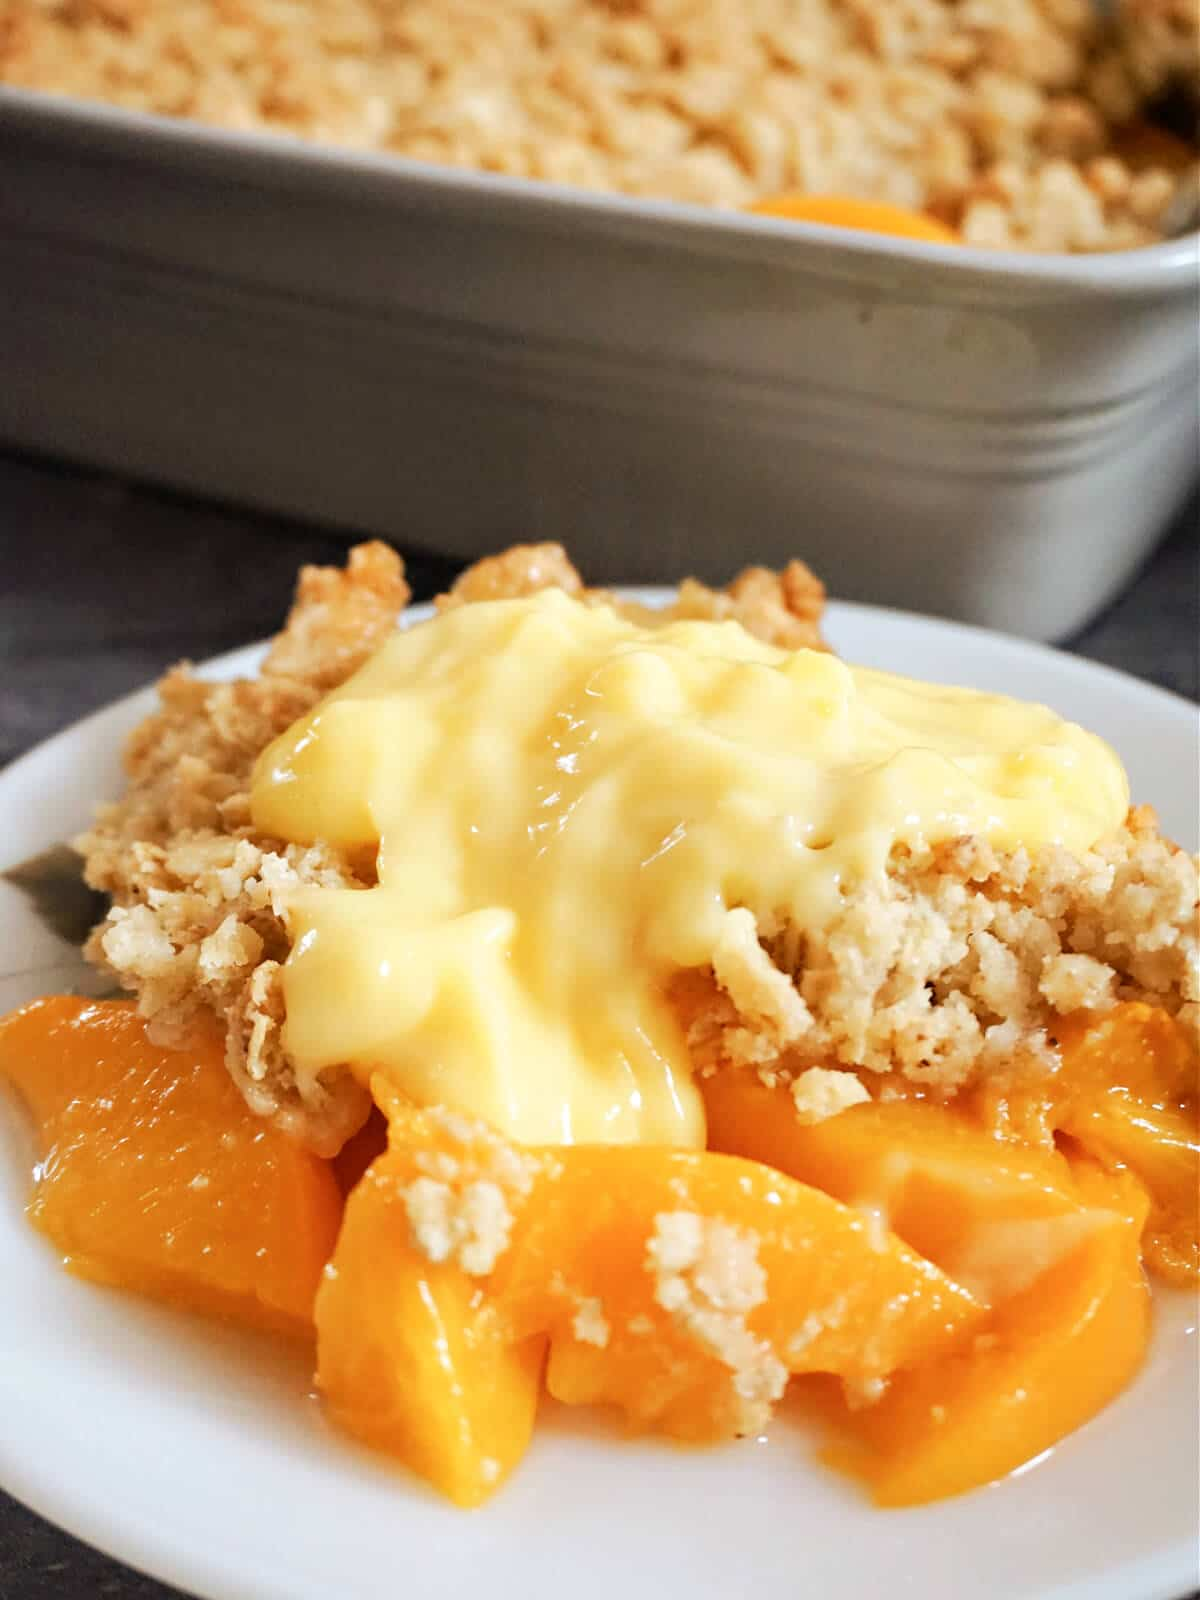 A white plate with peach crumble and a dish with more crumble in the background